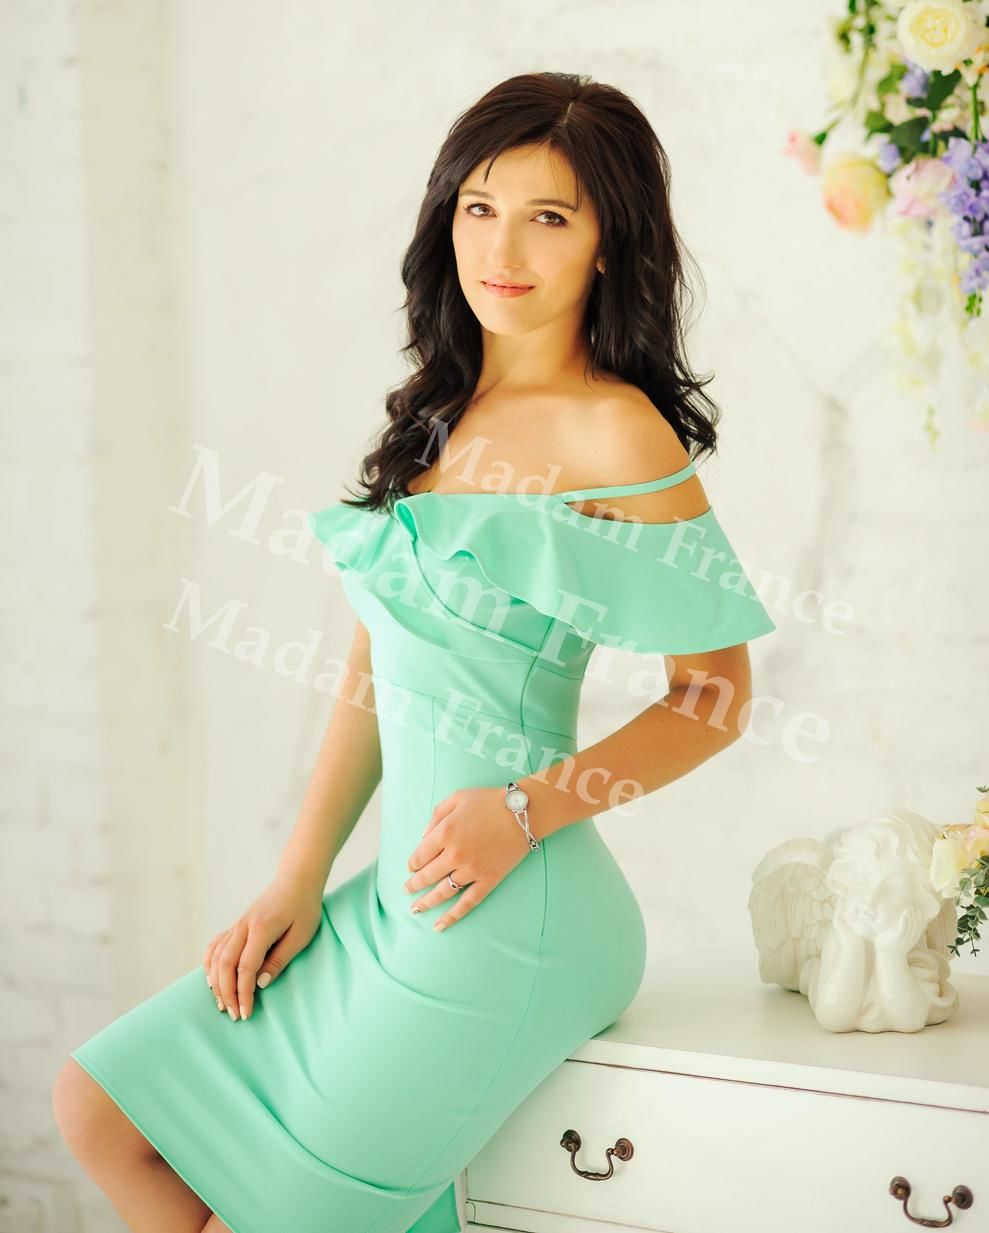 Regina model on Madam France escort service